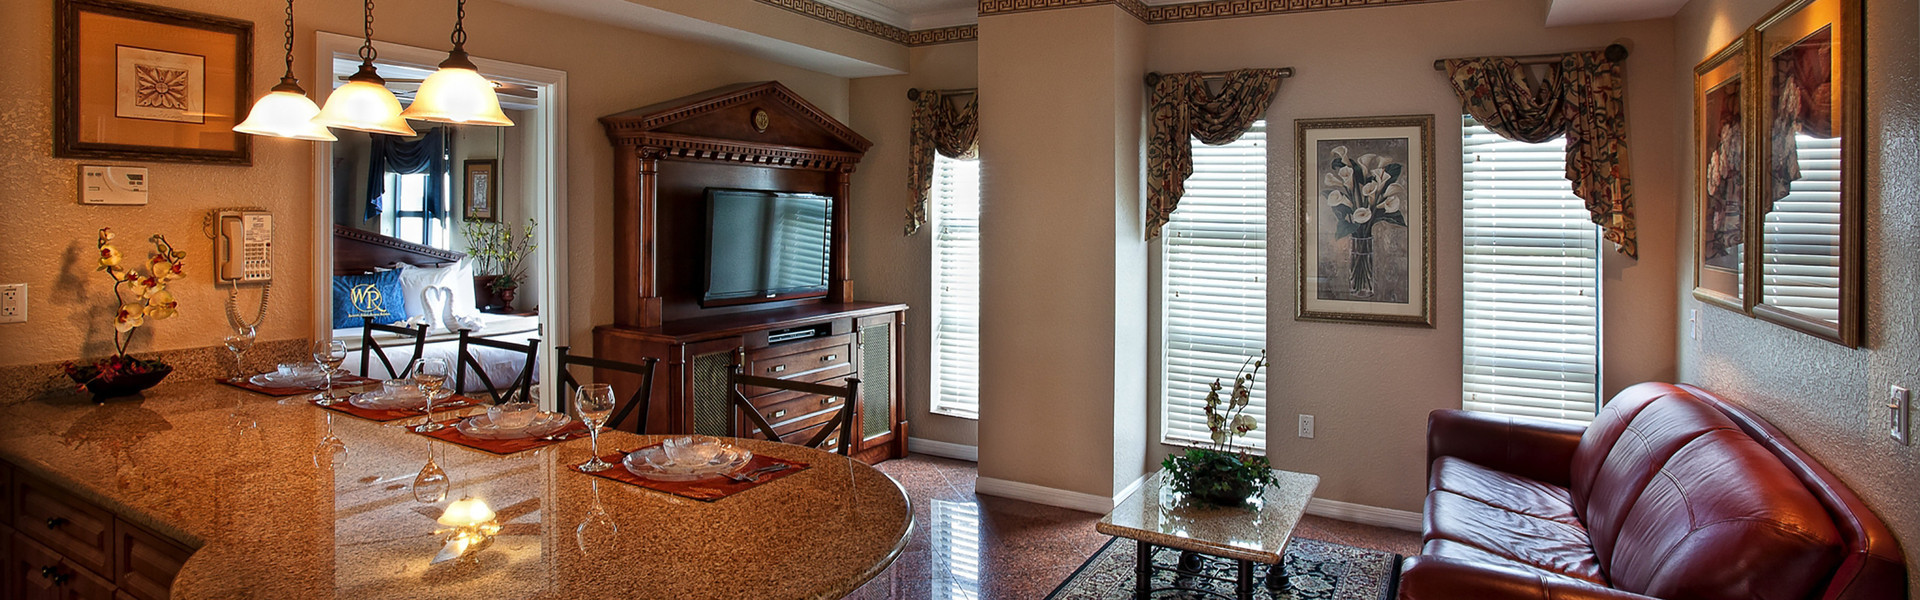 Accommodations in Orlando Florida | Resorts Near International Drive Orlando, FL | Westgate Palace Resort Near 32819